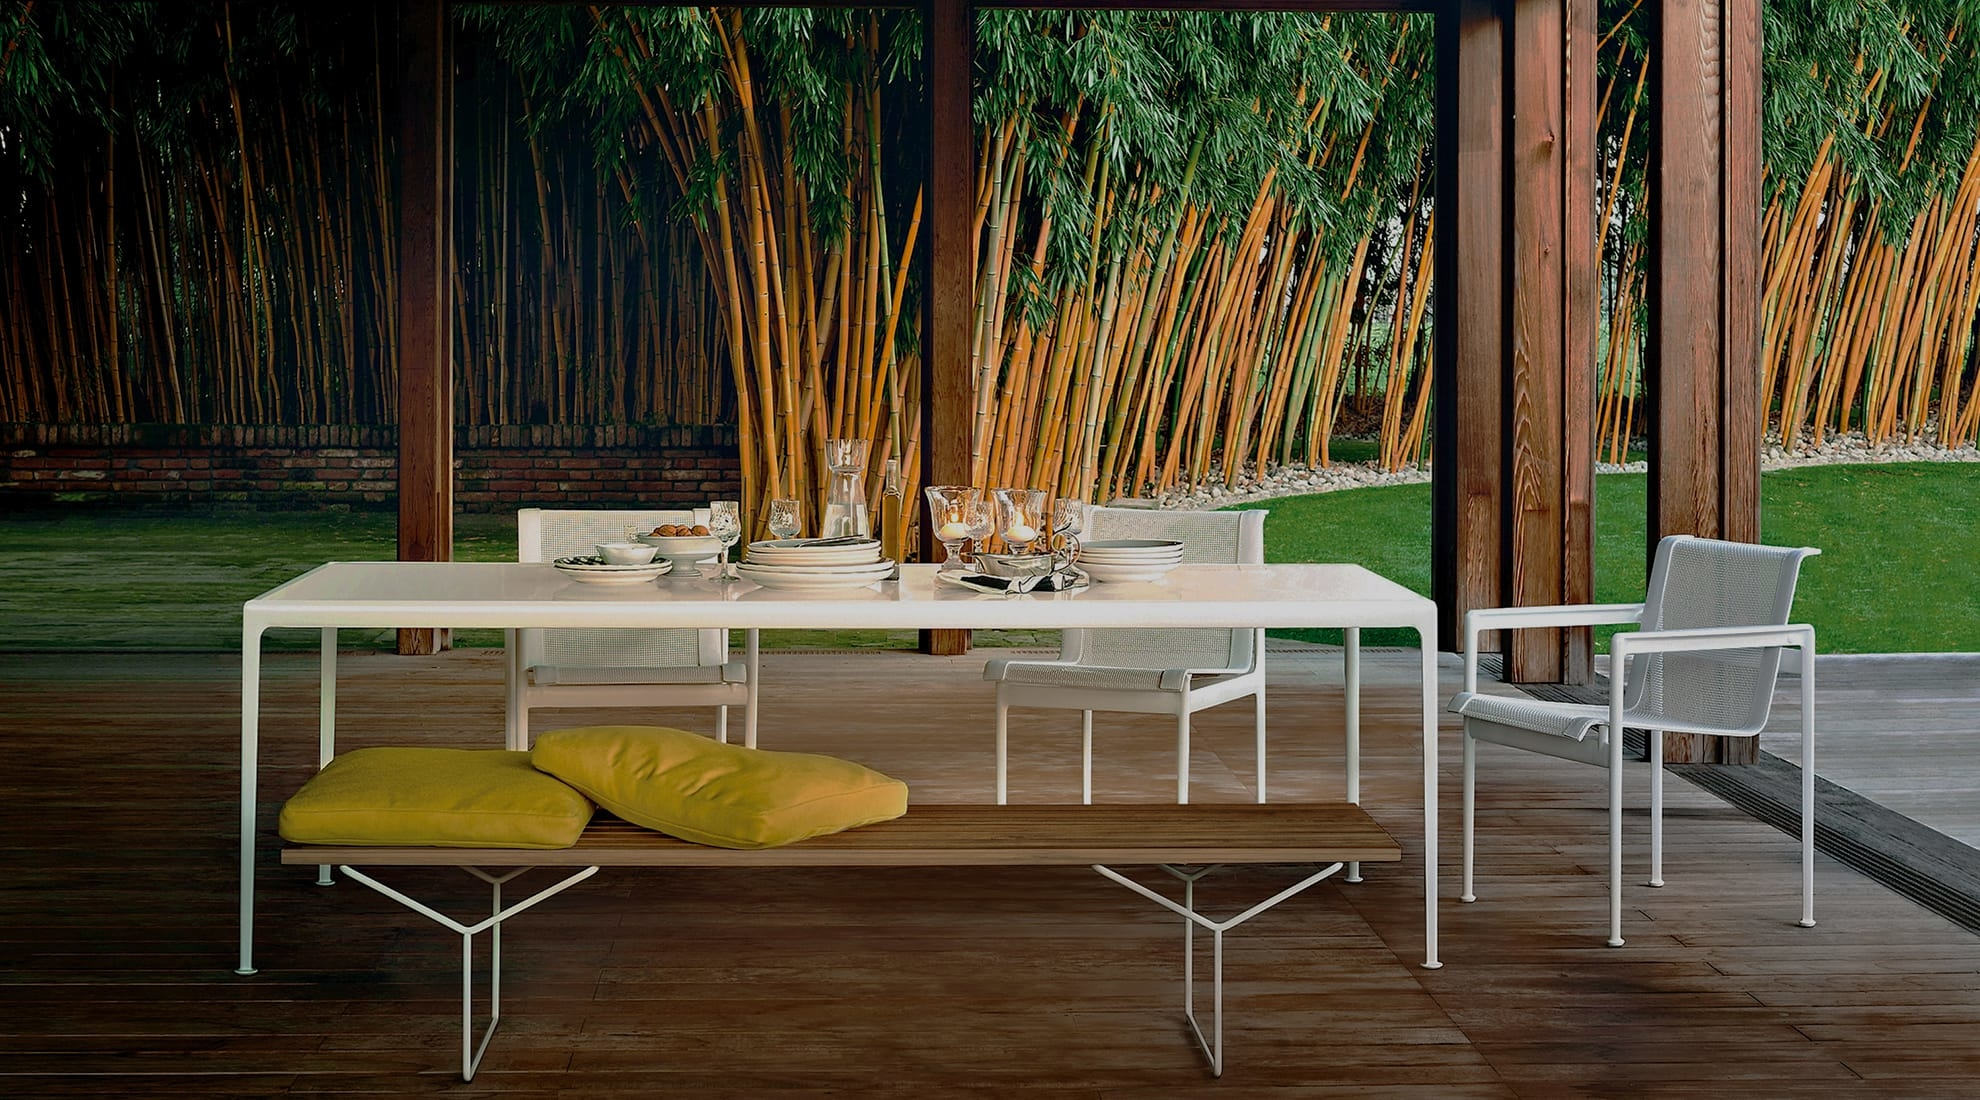 Medium Size of Lounge Chair Ideas: Gallery3 Loungeir Ideas Aluminumirs Eames Group Herman Miller Patio